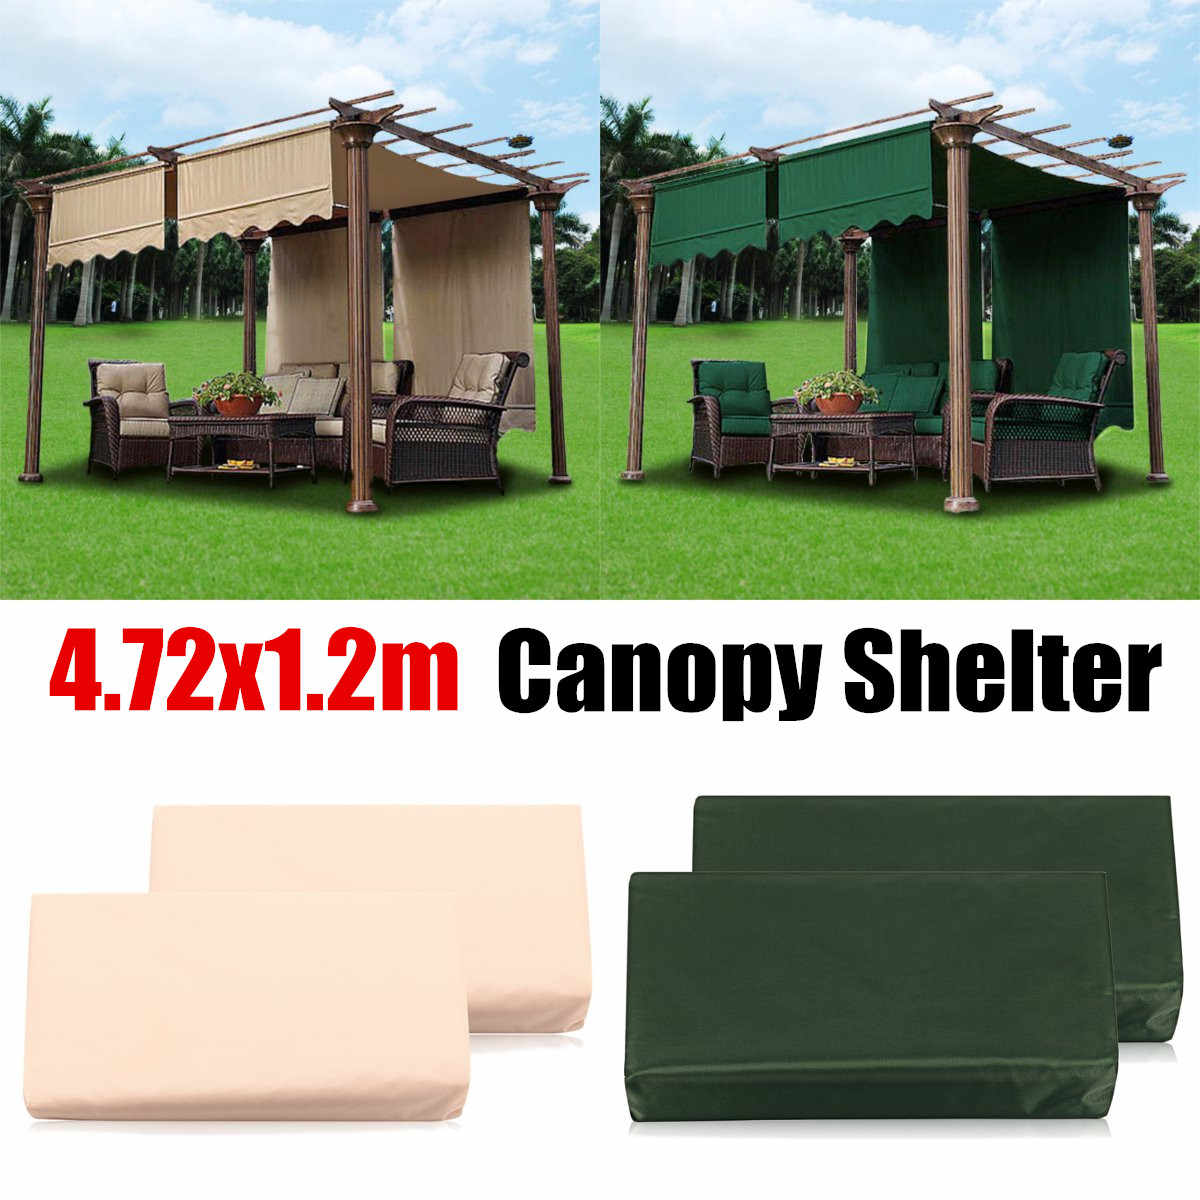 Outdoor 2Pcs/Set Sun Shade Canopy Camping Cover Garden Patio Shelter Waterproof Polyester Sun Block Cloth Green/Beige 4.72x1.2m